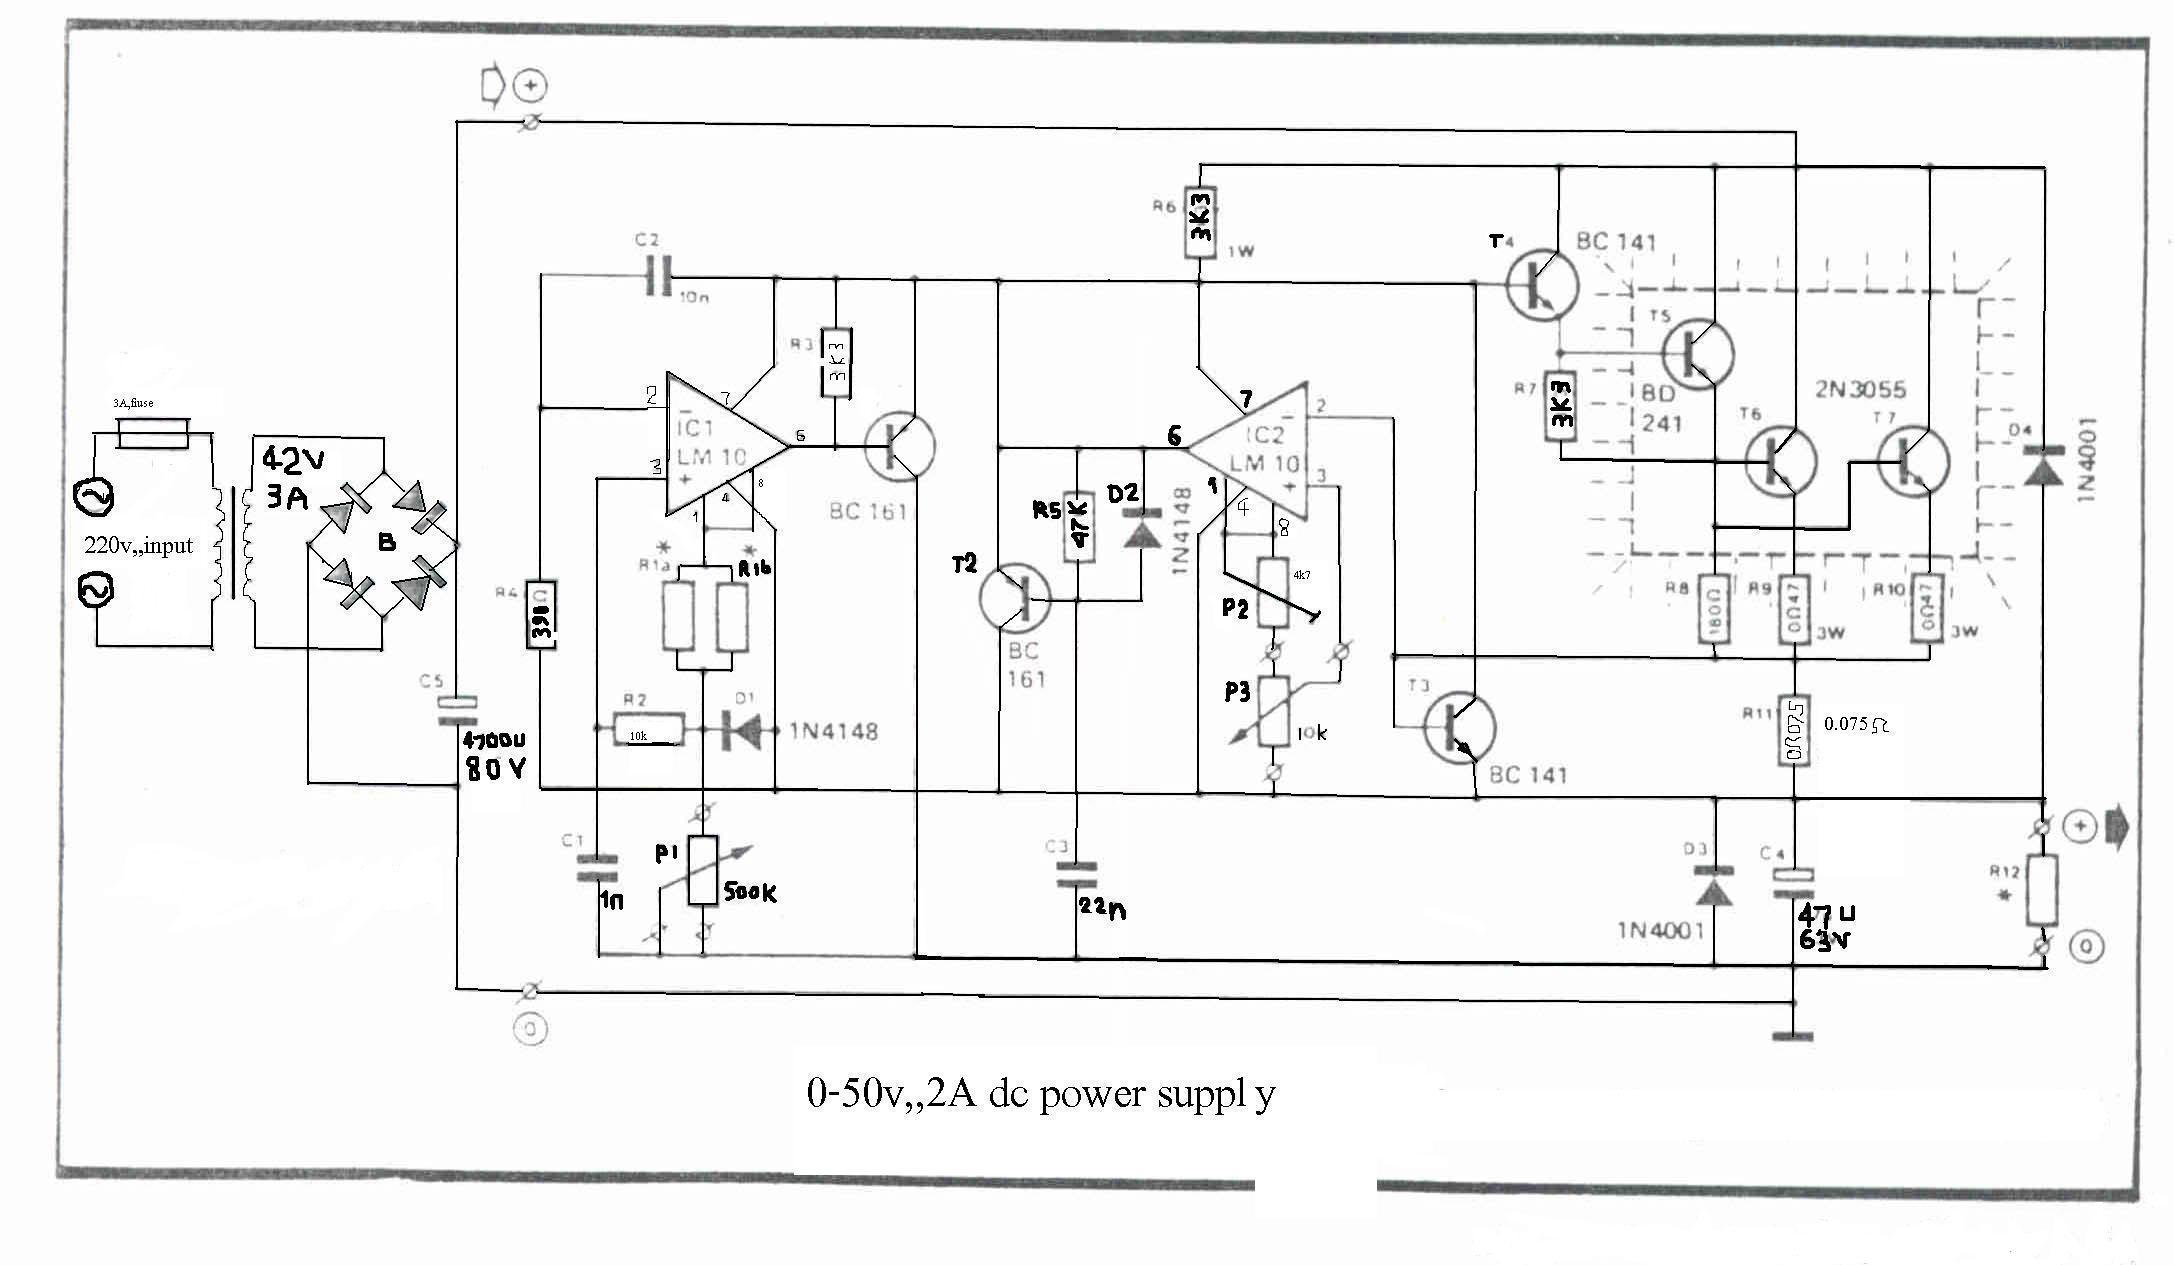 Lab Bench Power Supply Schematic Trusted Wiring Diagram Atx 0 50v 2a Electronics Hole Pattern